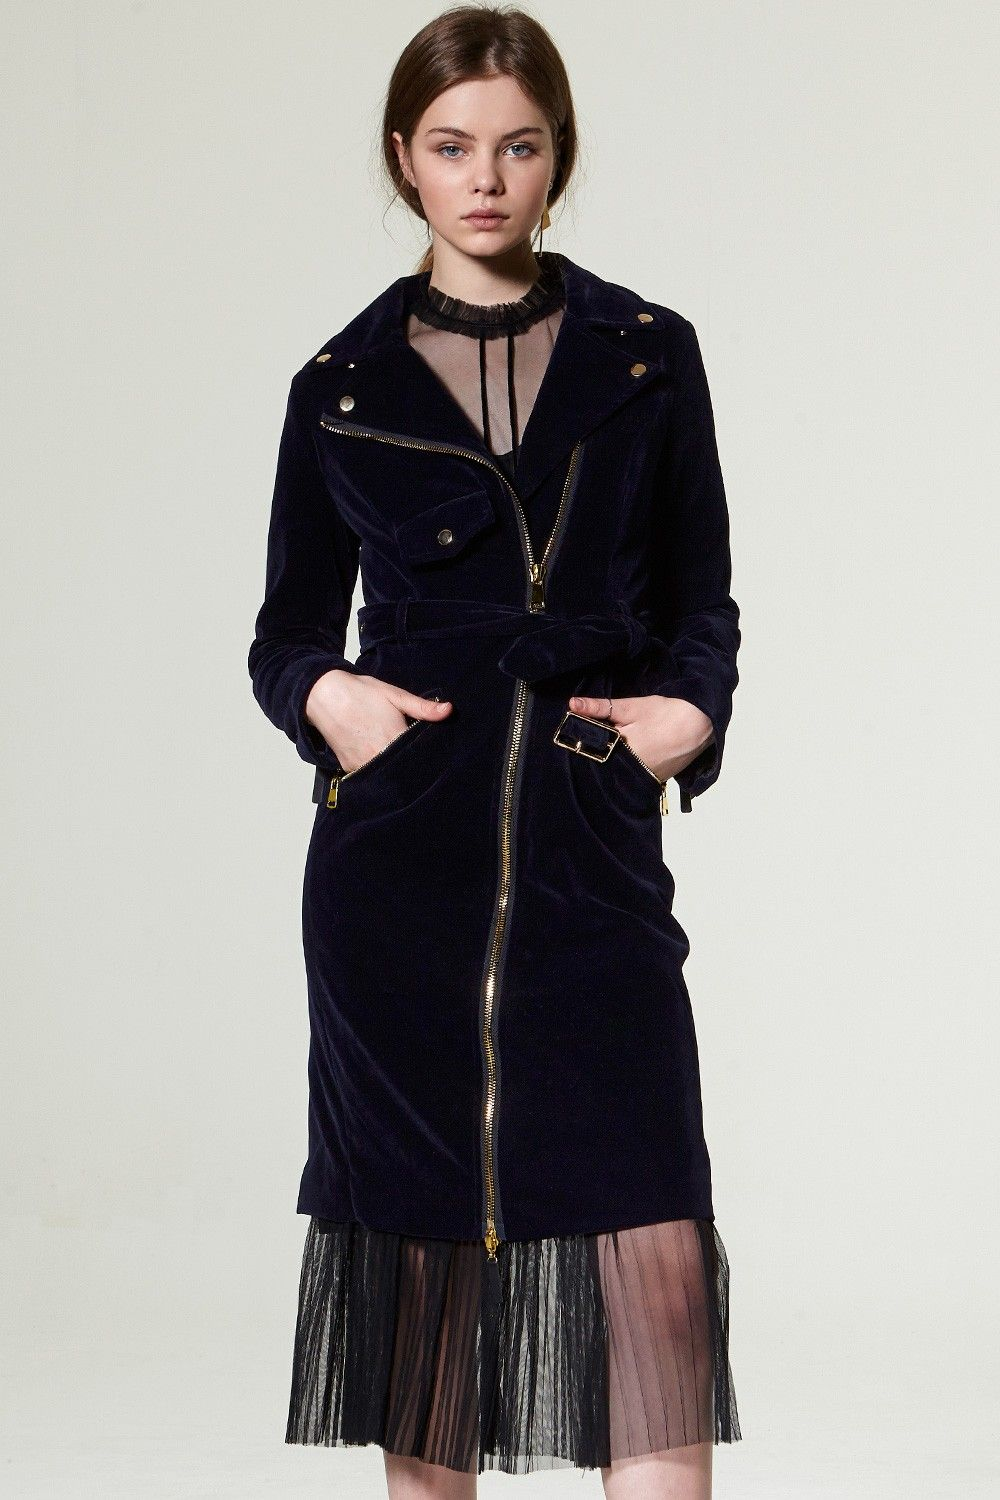 Zoe Velvet Suede Trench Jacket Dress Discover the latest fashion trends online at storets.com